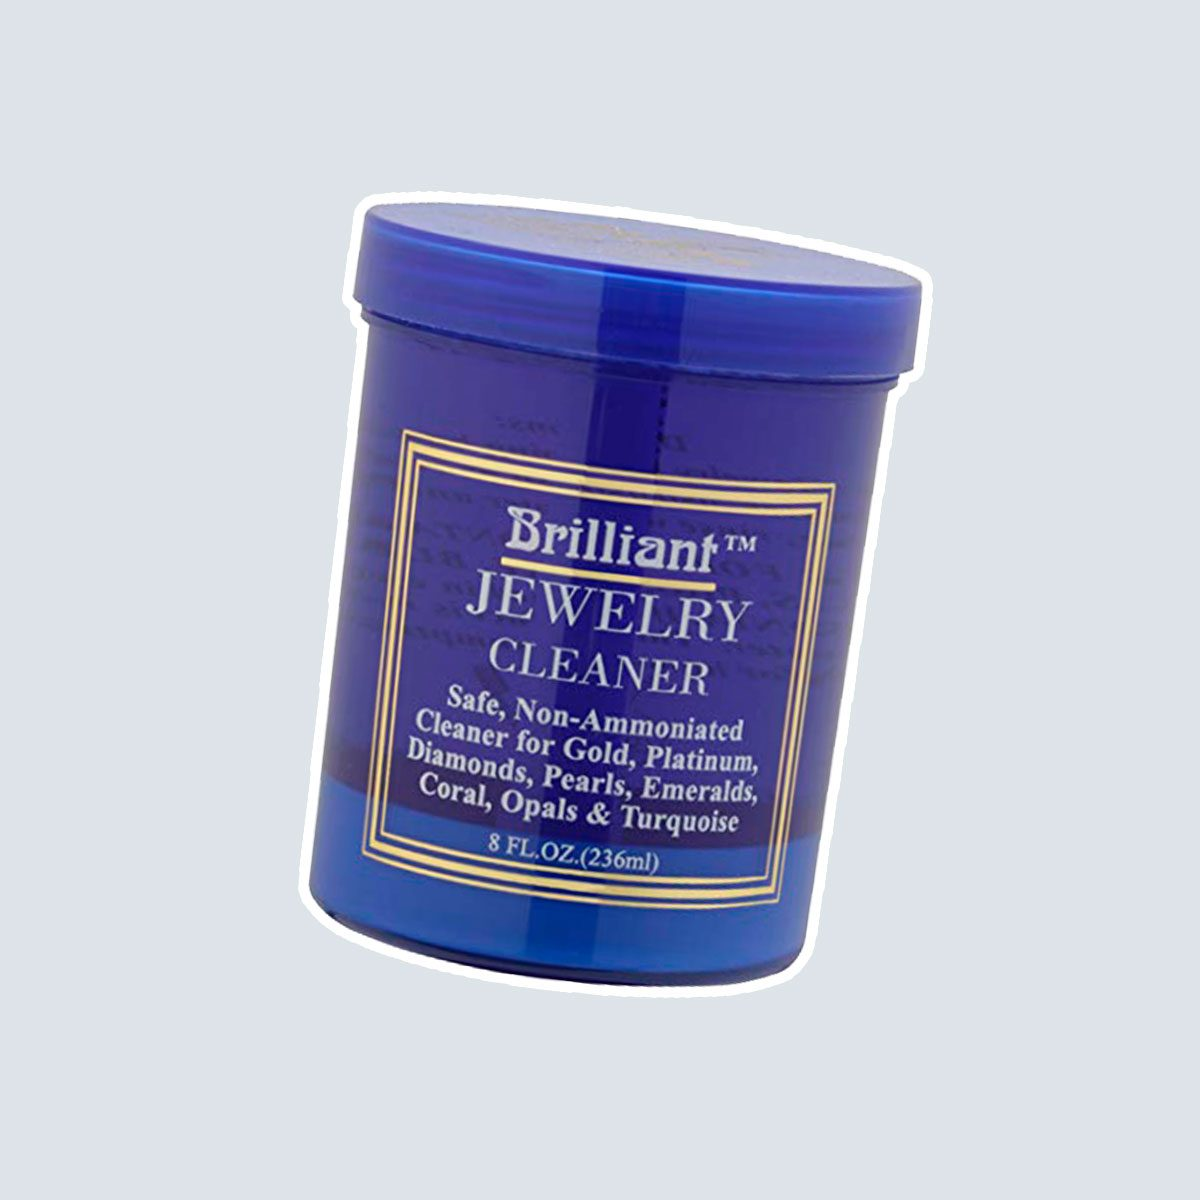 Brilliant Jewelry Cleaner